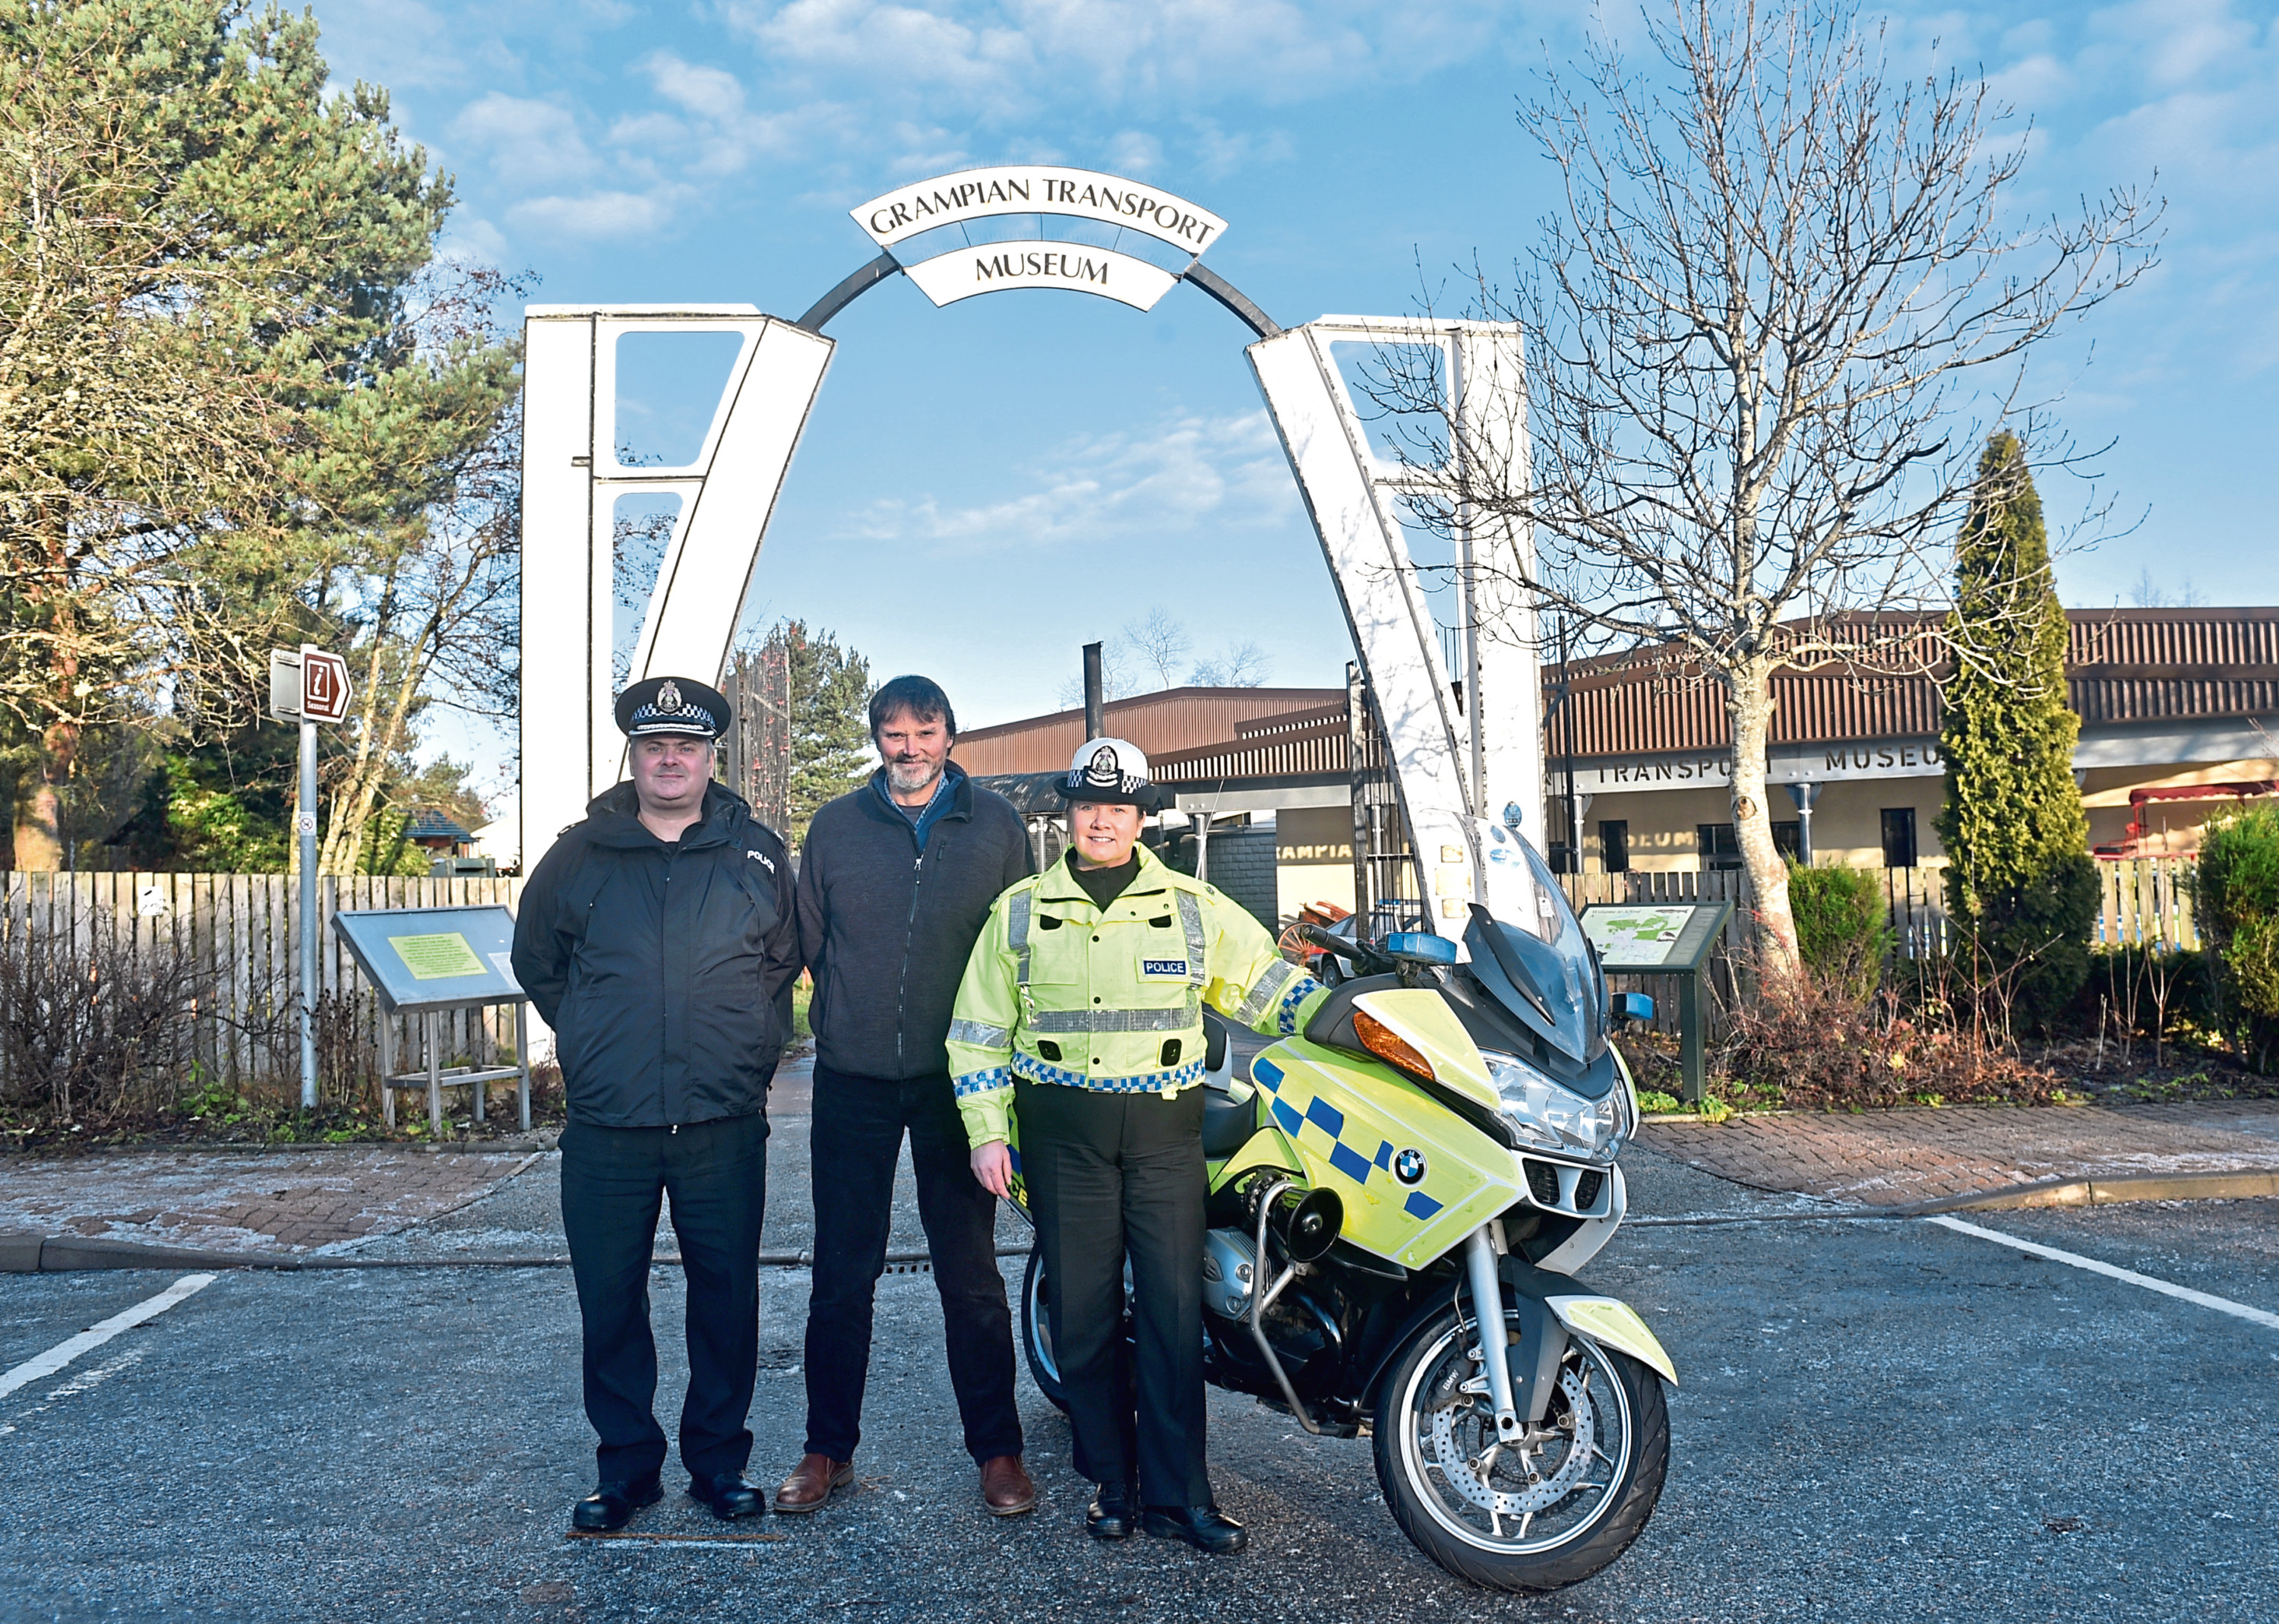 Superintendent Stewart Mackie from Police Scotland,  Mike Ward MBE, Curator, Grampian Transport Museum and Superintendent Louise Blakelock